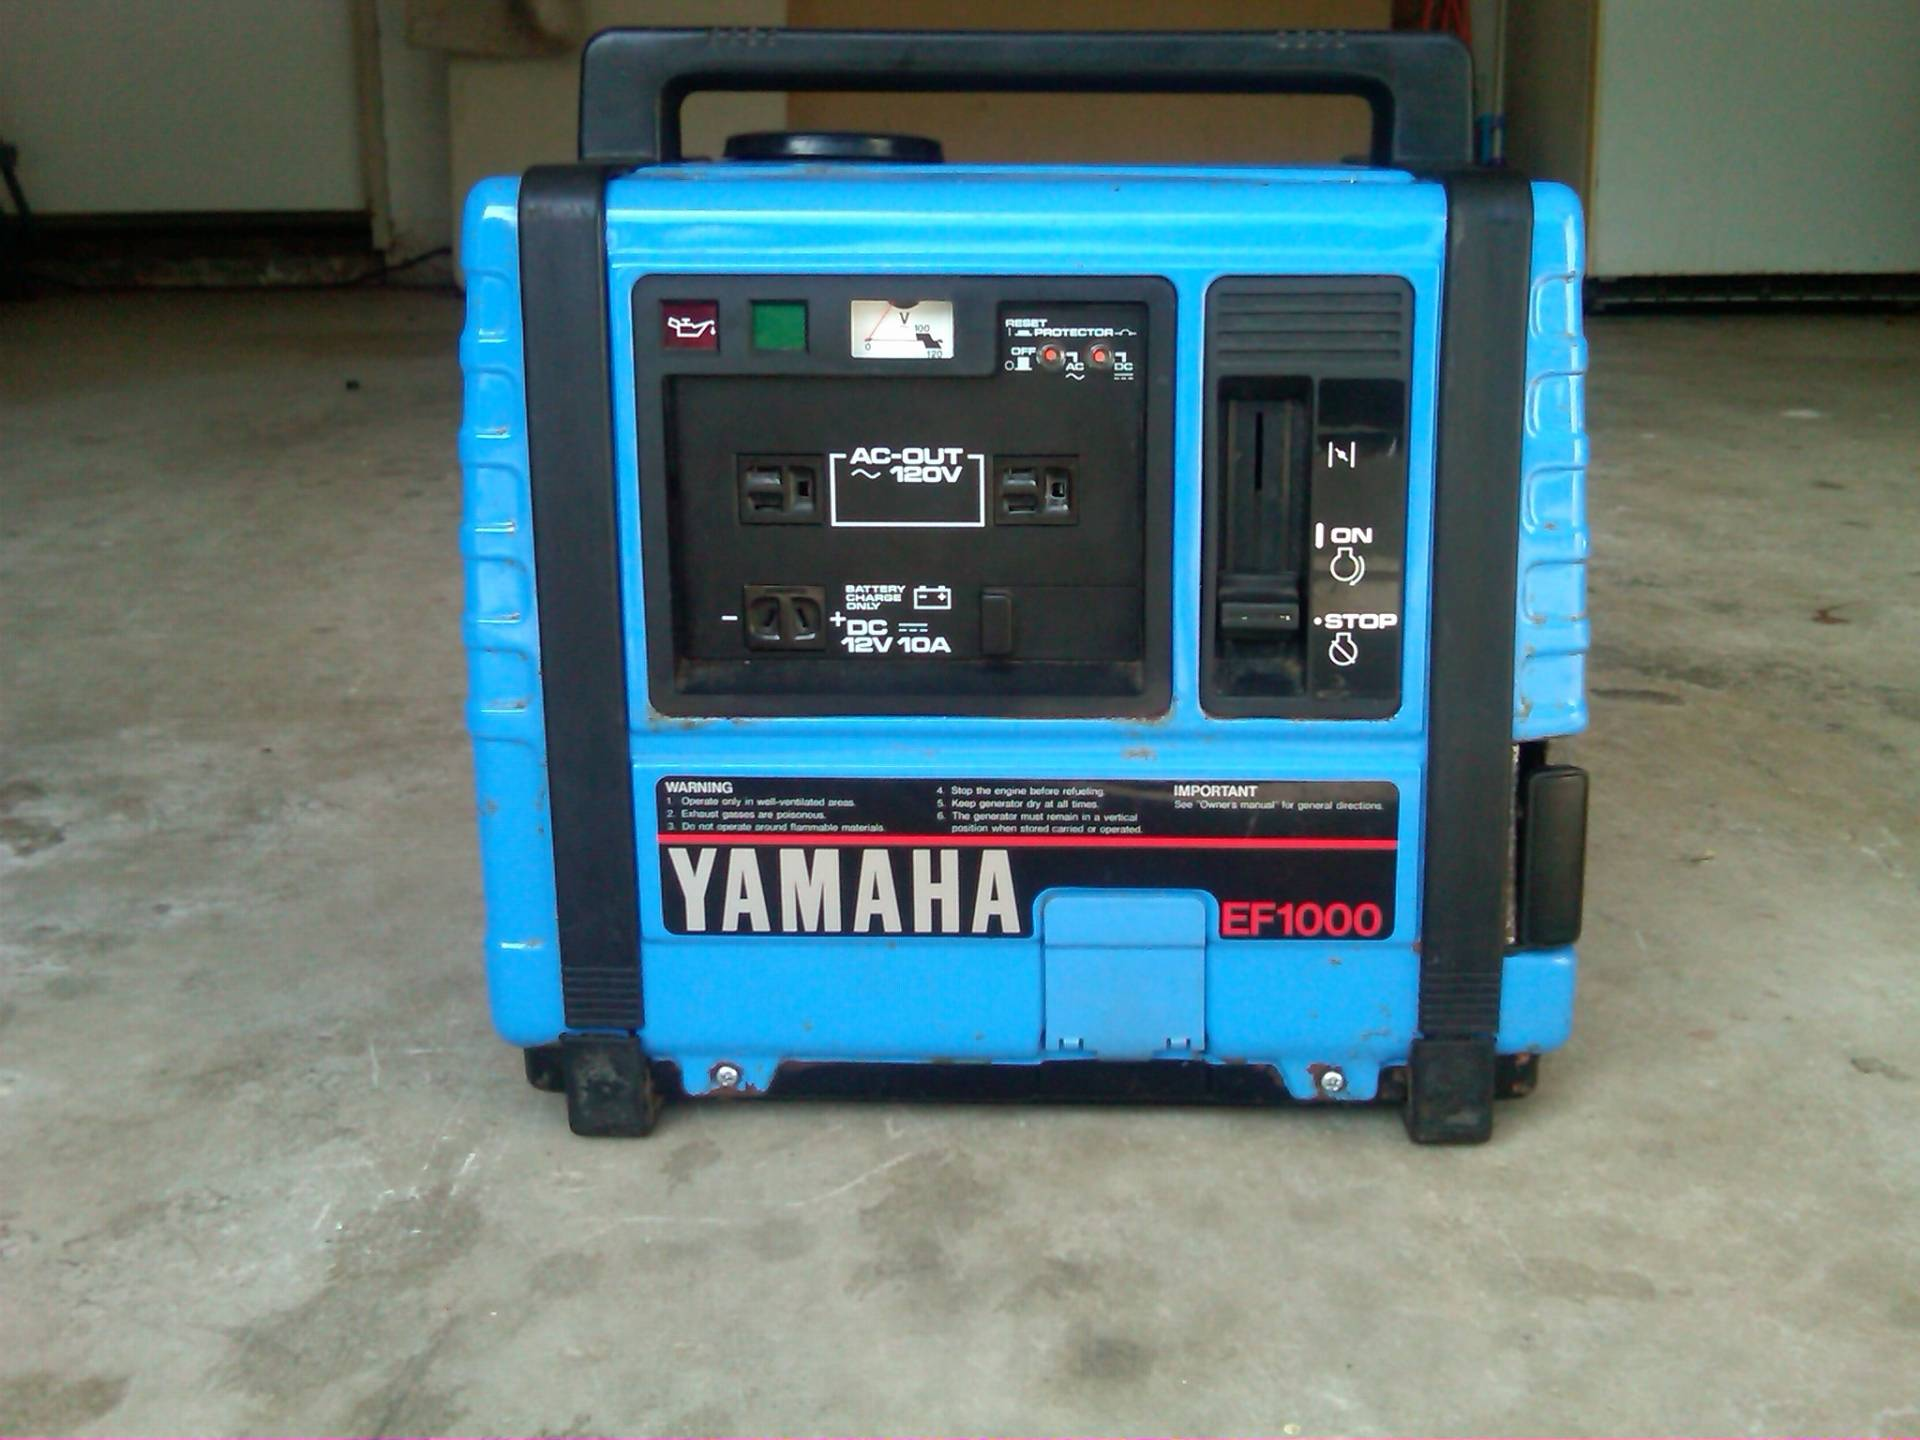 Yamaha ef 1000 generator bloodydecks for Yamaha generator for sale